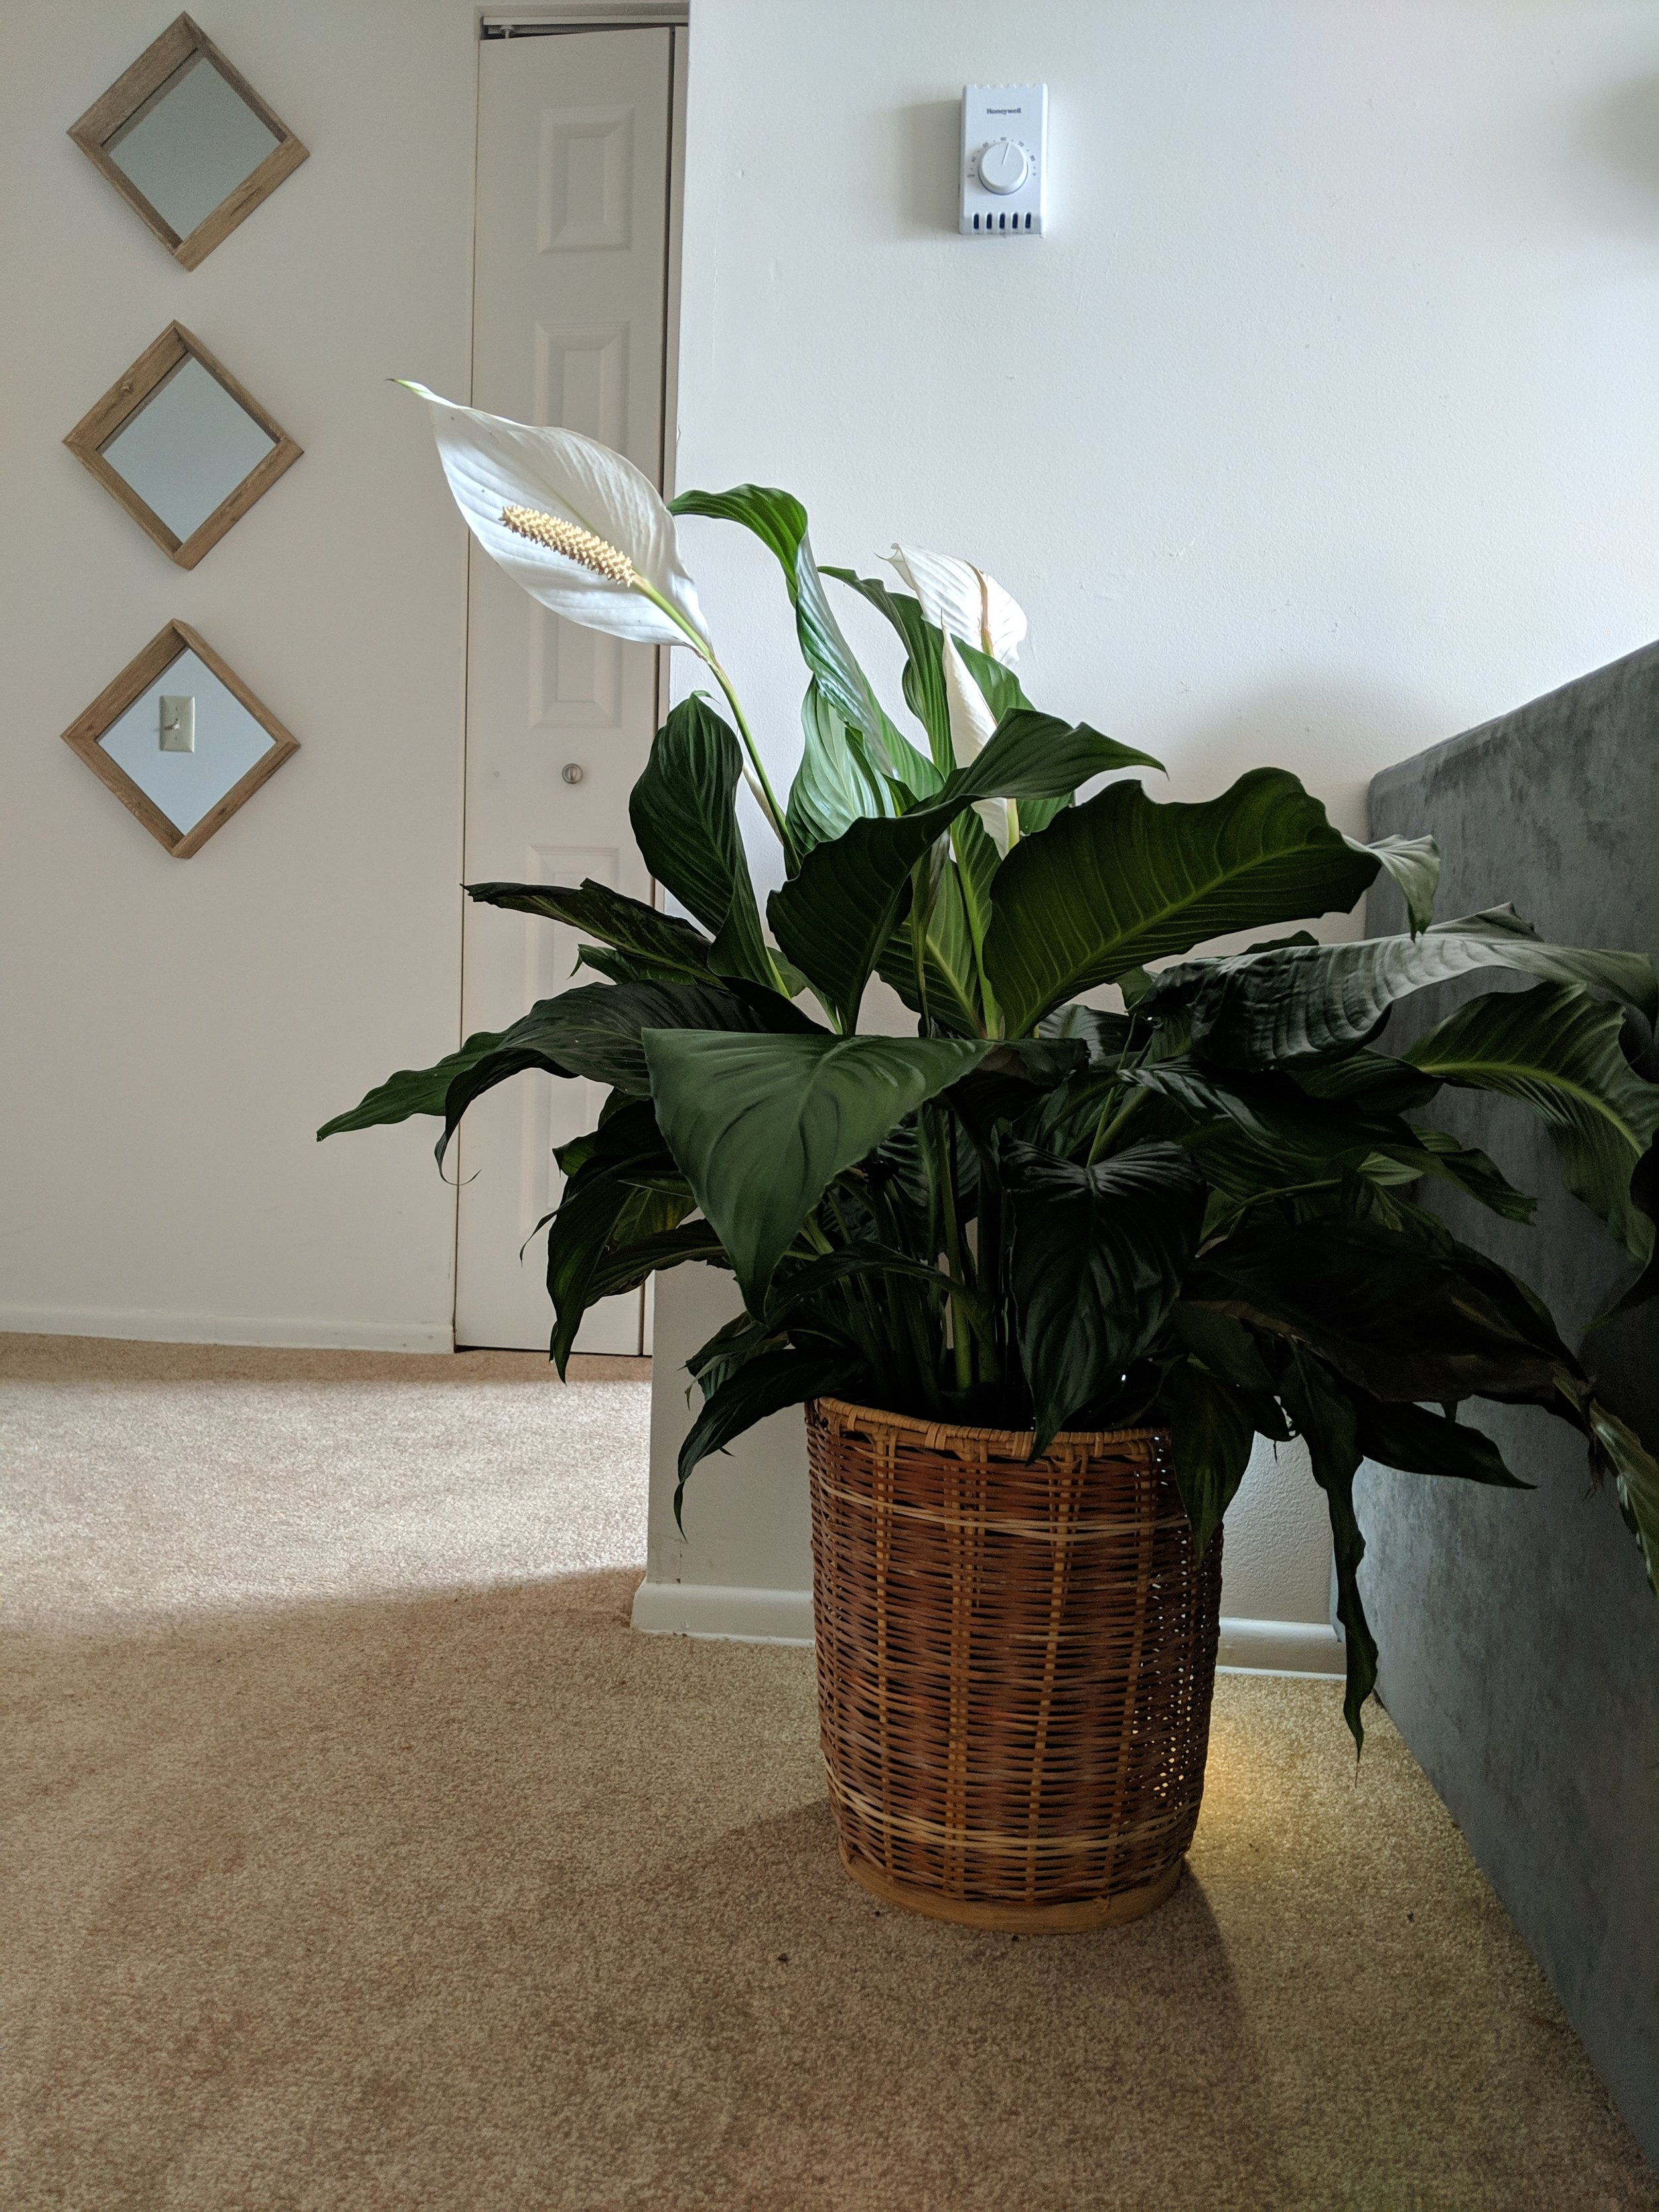 I'm a basketcase, I know. - This was actually a leftover from Eli's mom's garage sale. She let us pick whatever we wanted, and for a while I was using it to hold Wednesday's toys. But when my mom gave me this Peace Lily as a housewarming gift, I knew it was a match made in basket heaven.